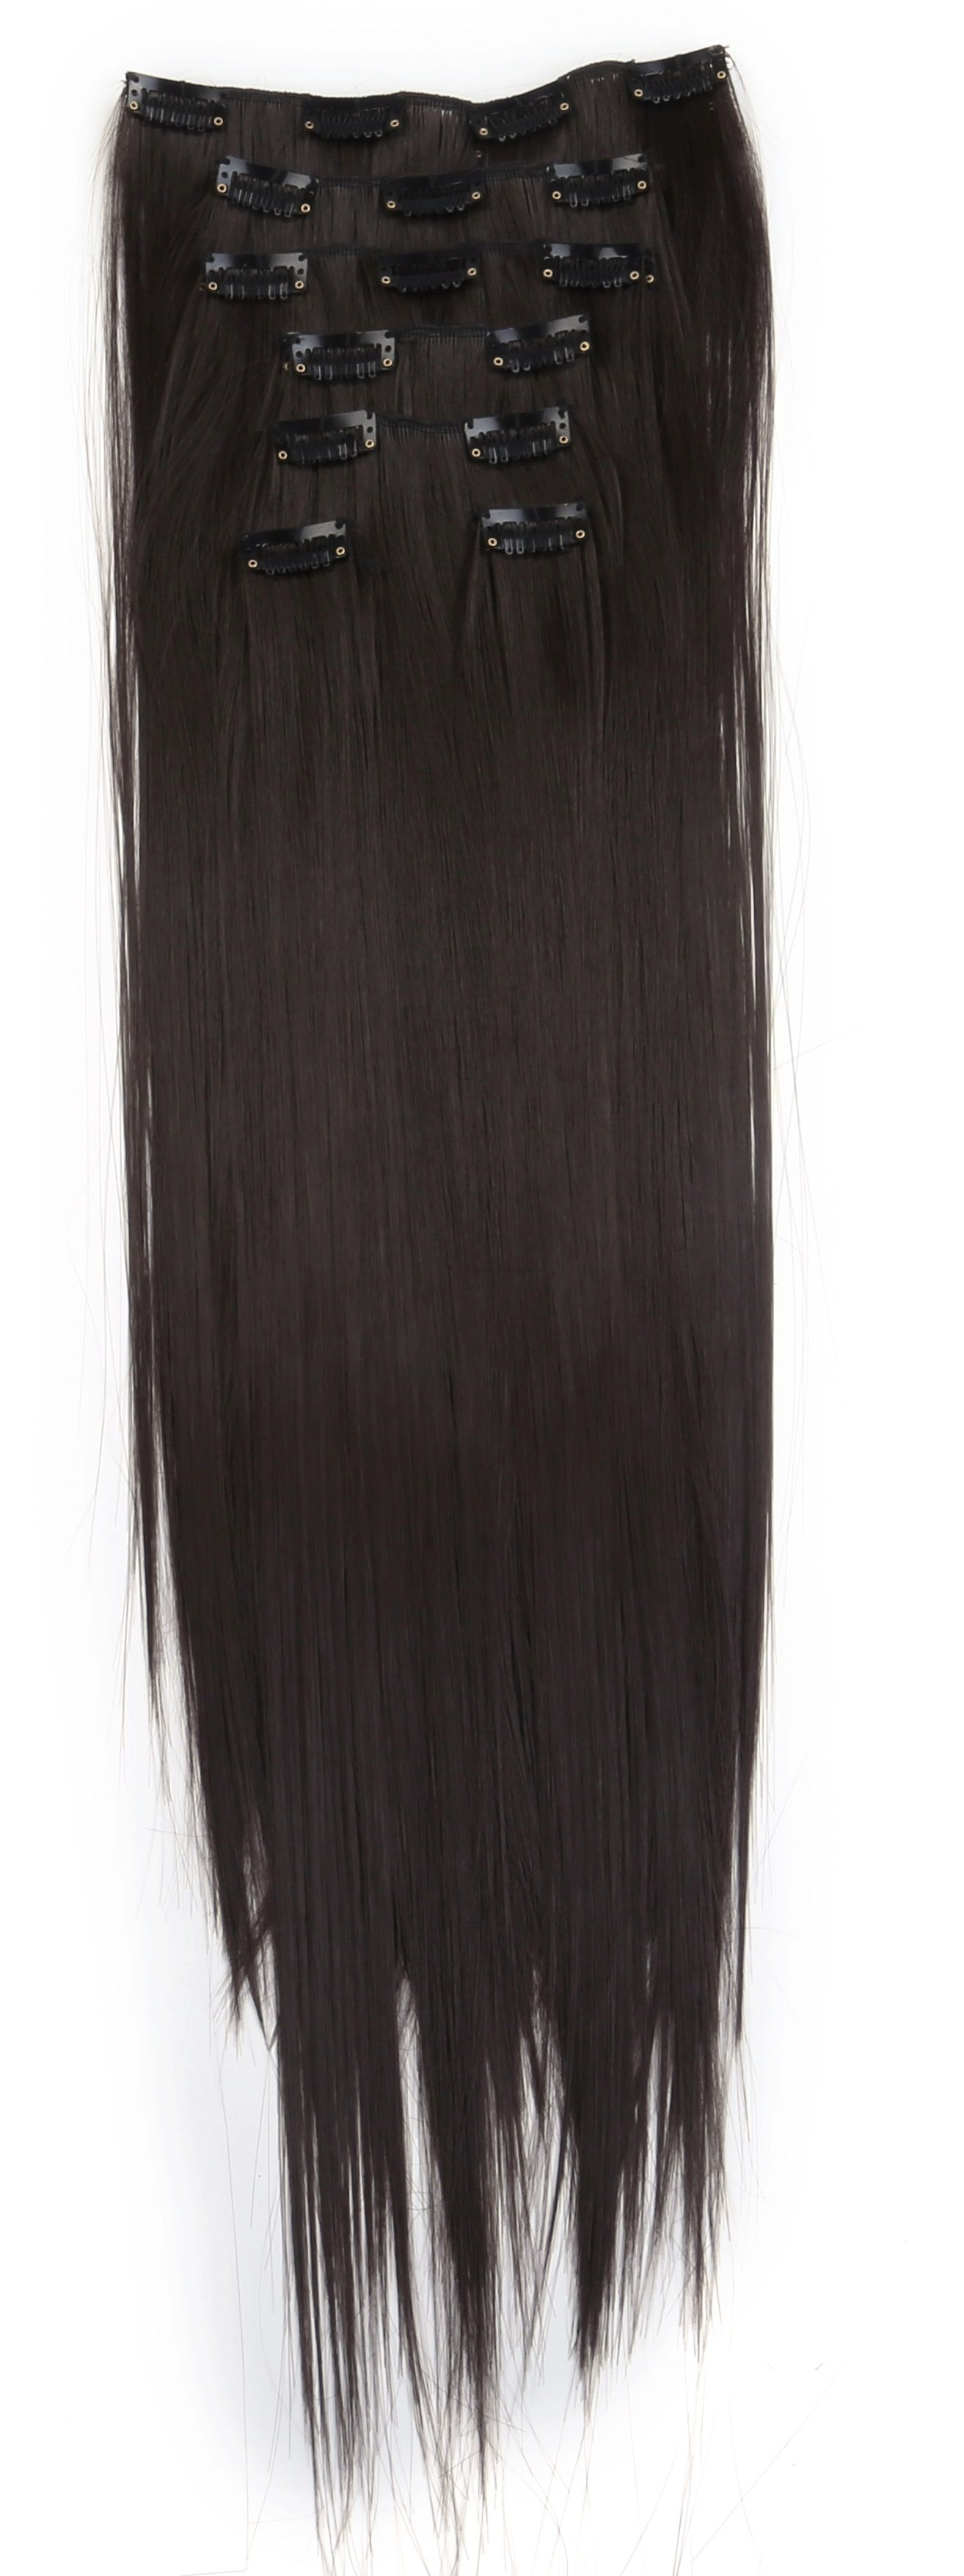 Synthetic hair extension color of 4 black hair extension